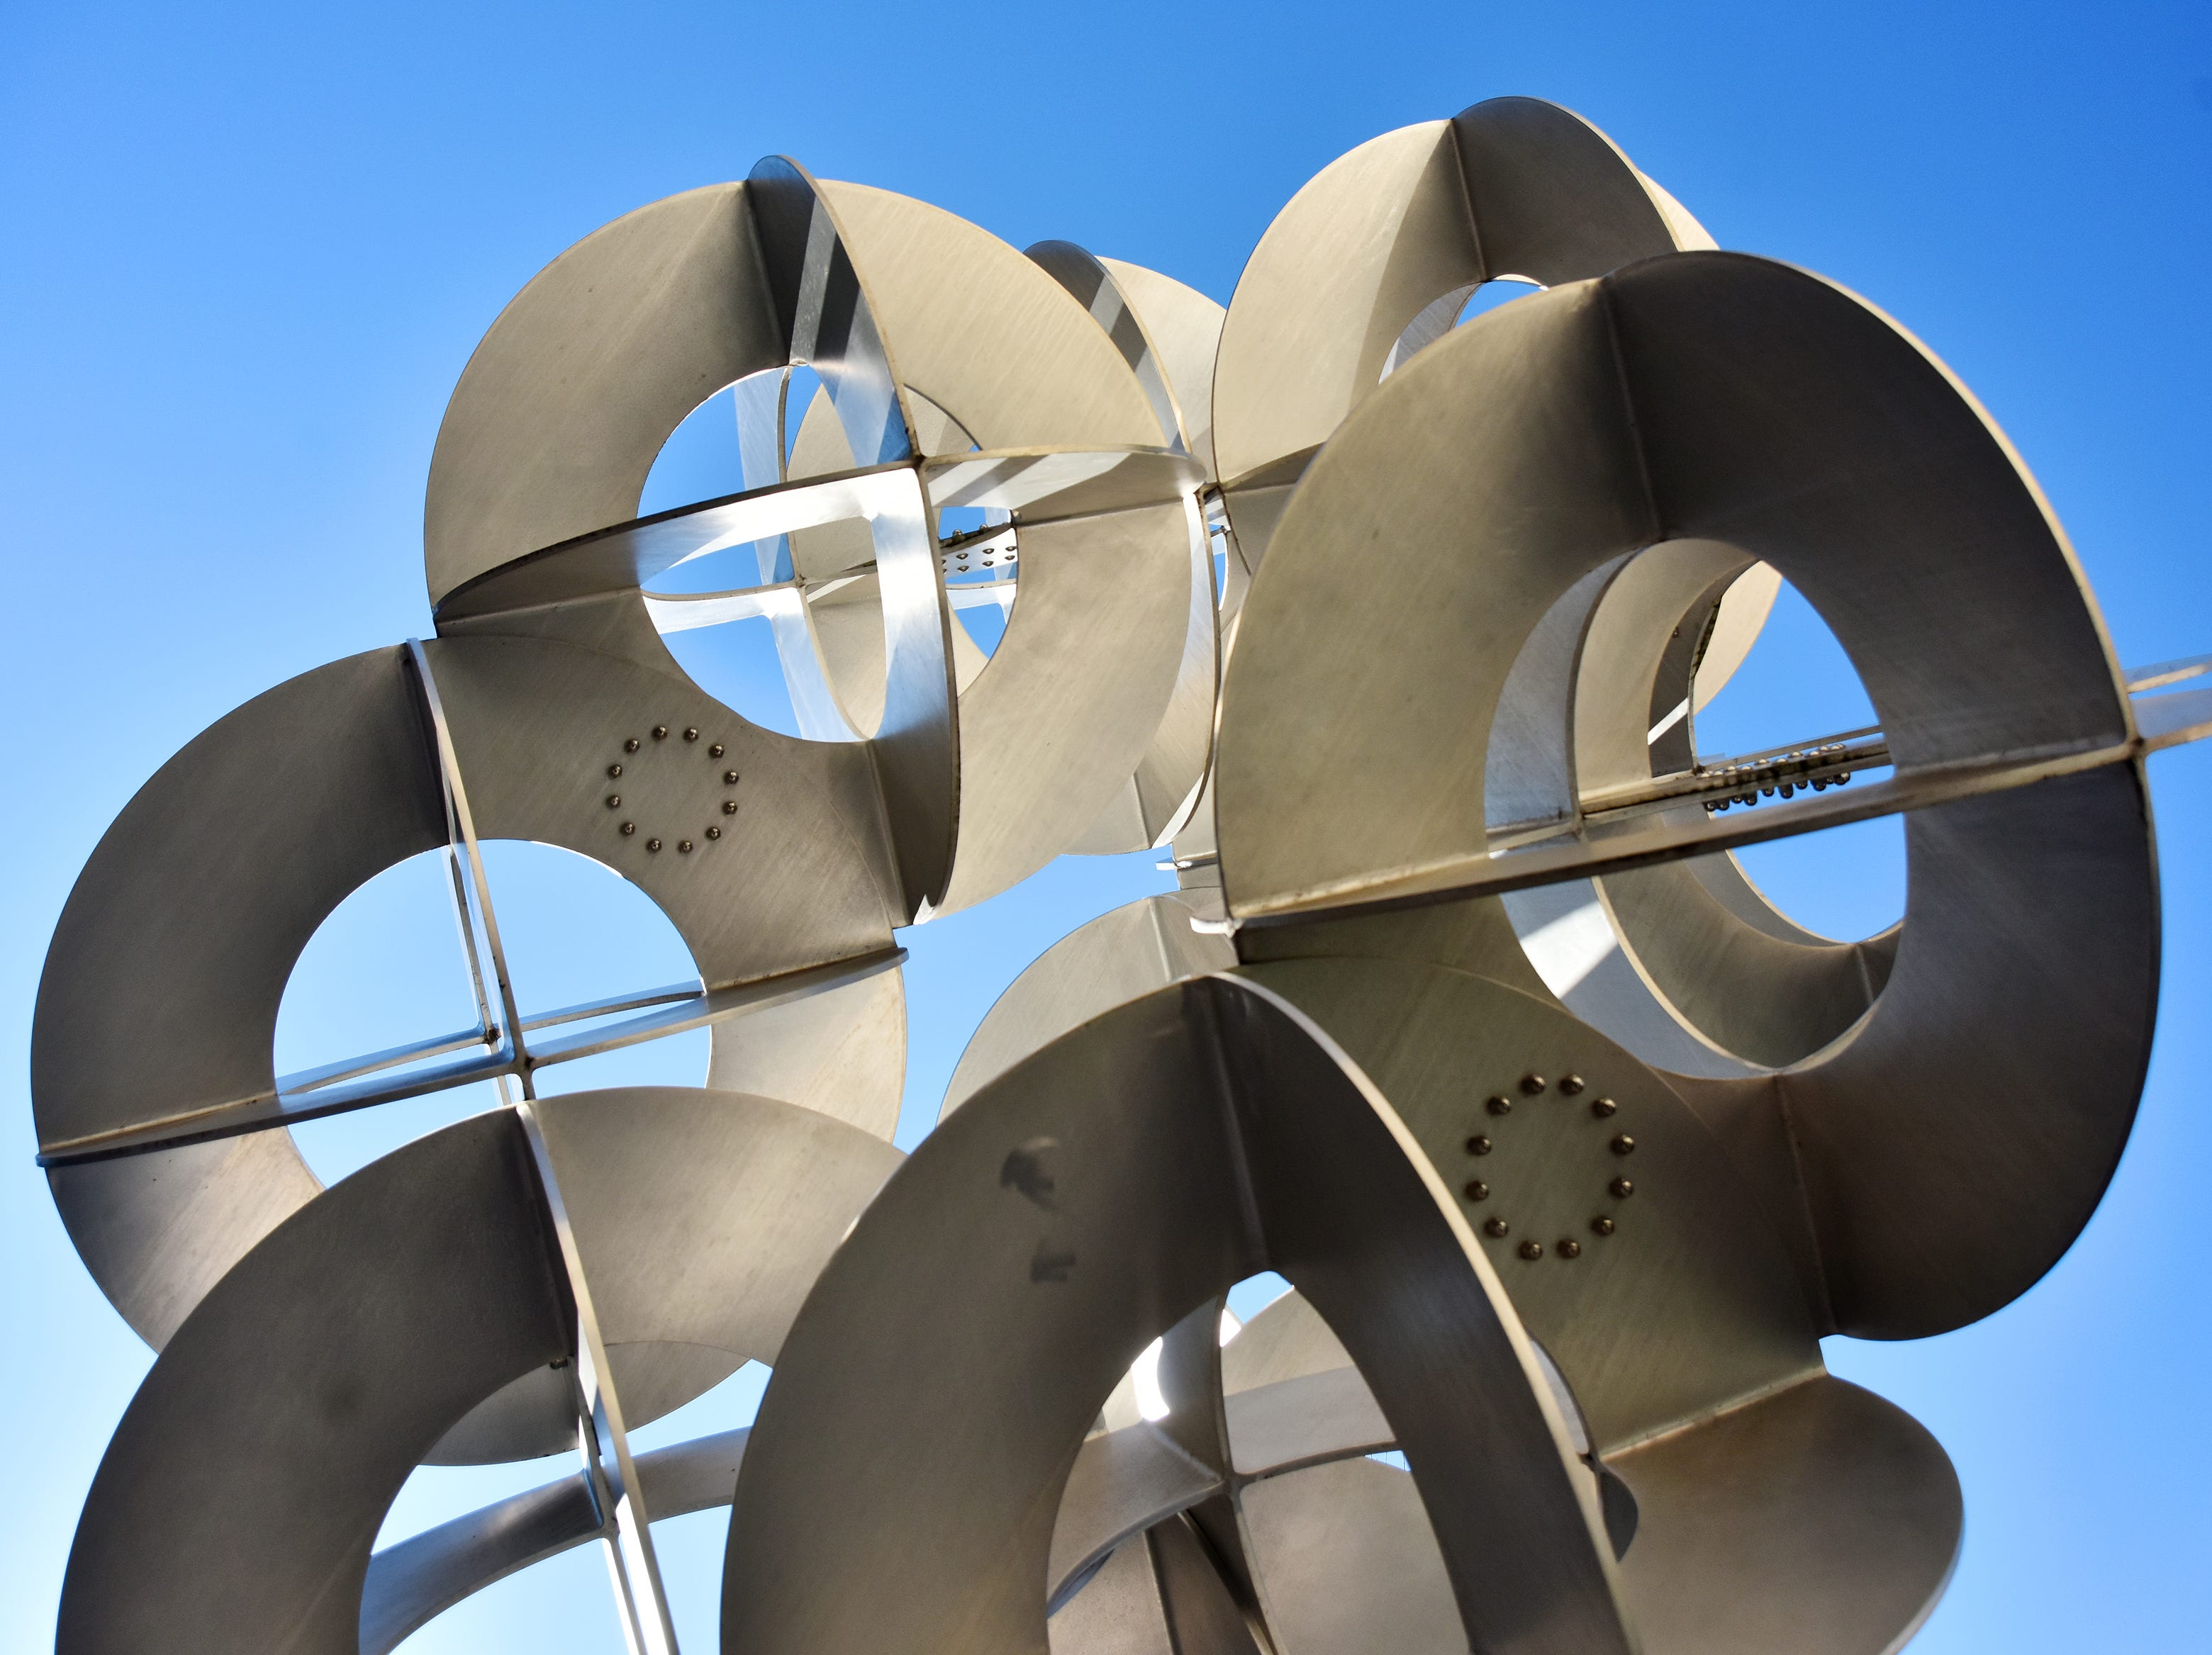 Orbital Trio by John Acorn is located in front of the Hyatt in downtown Greenville.